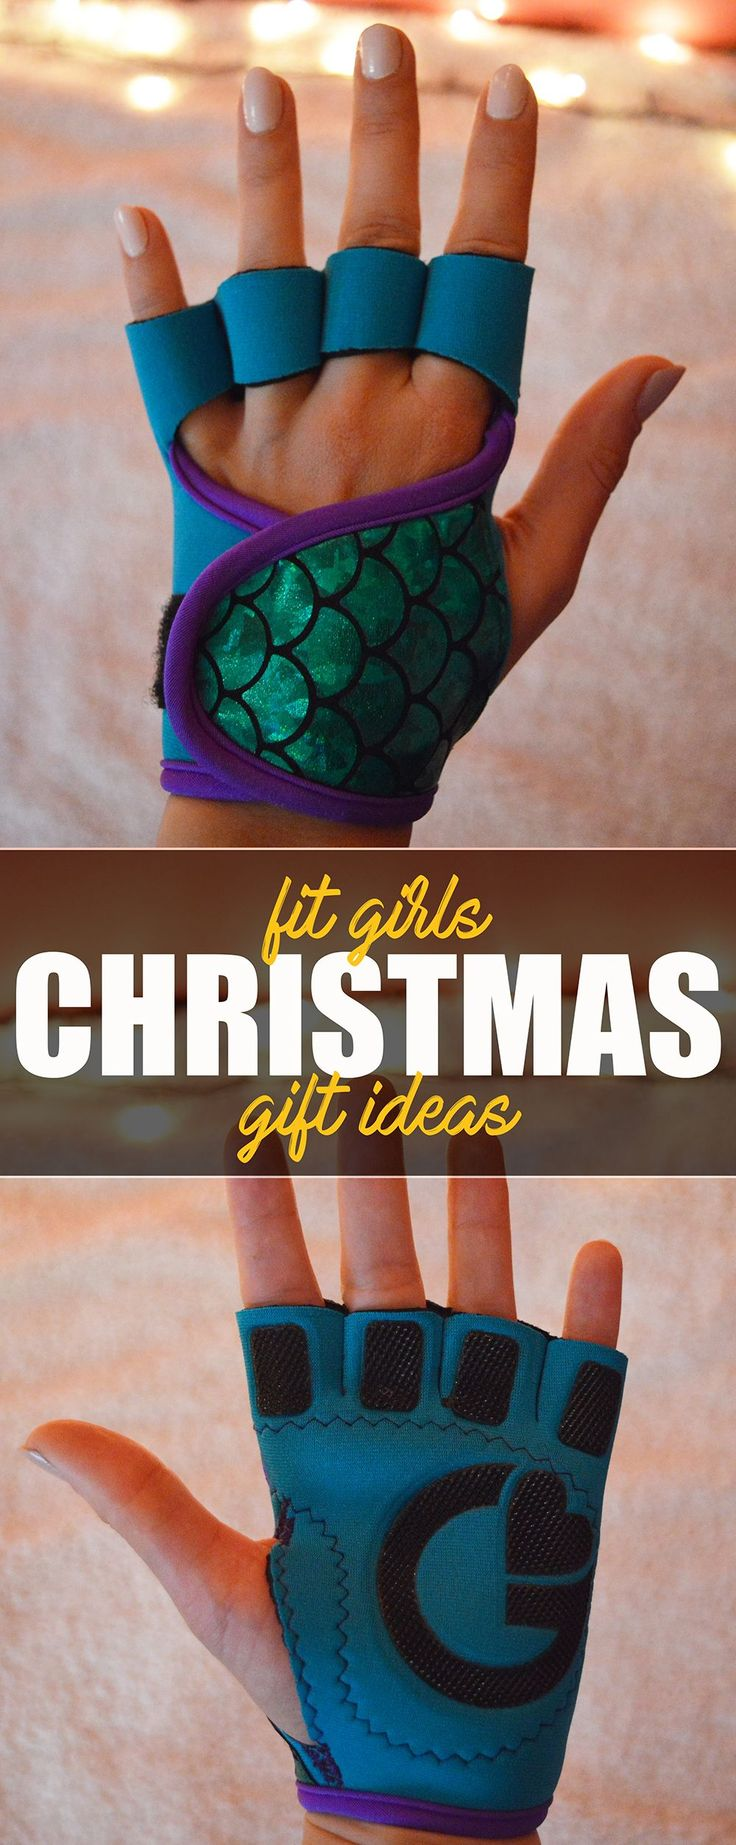 A list of 25 amazing, inspiring, creative and budget friendly Christmas fitness gift ideas for your friends and family who love fitness.